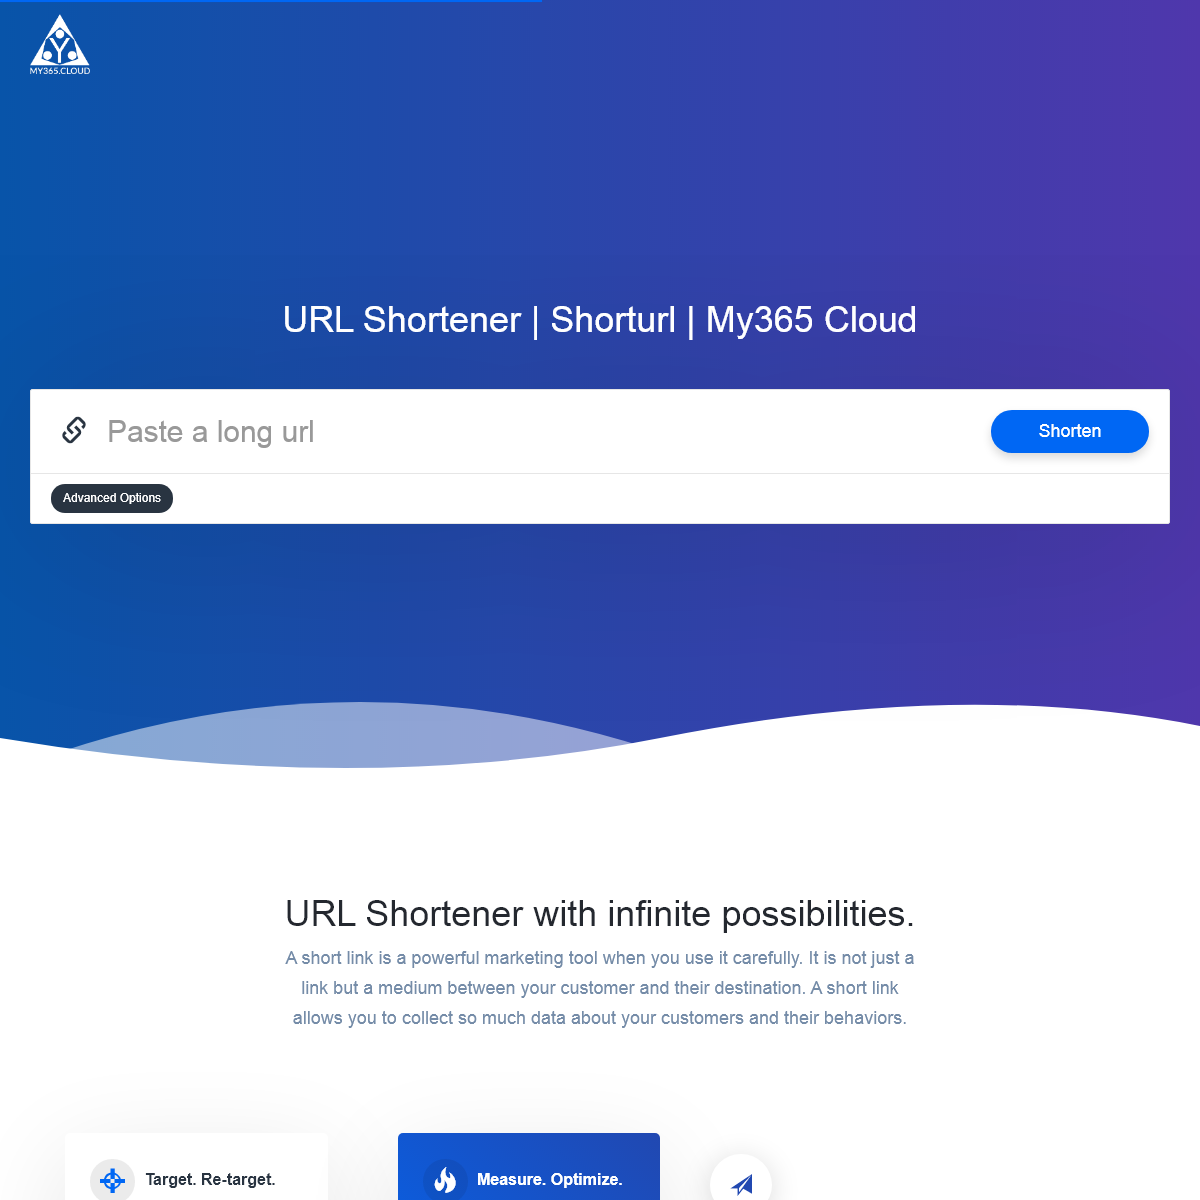 URL Shortener - Shorturl - My365 Cloud